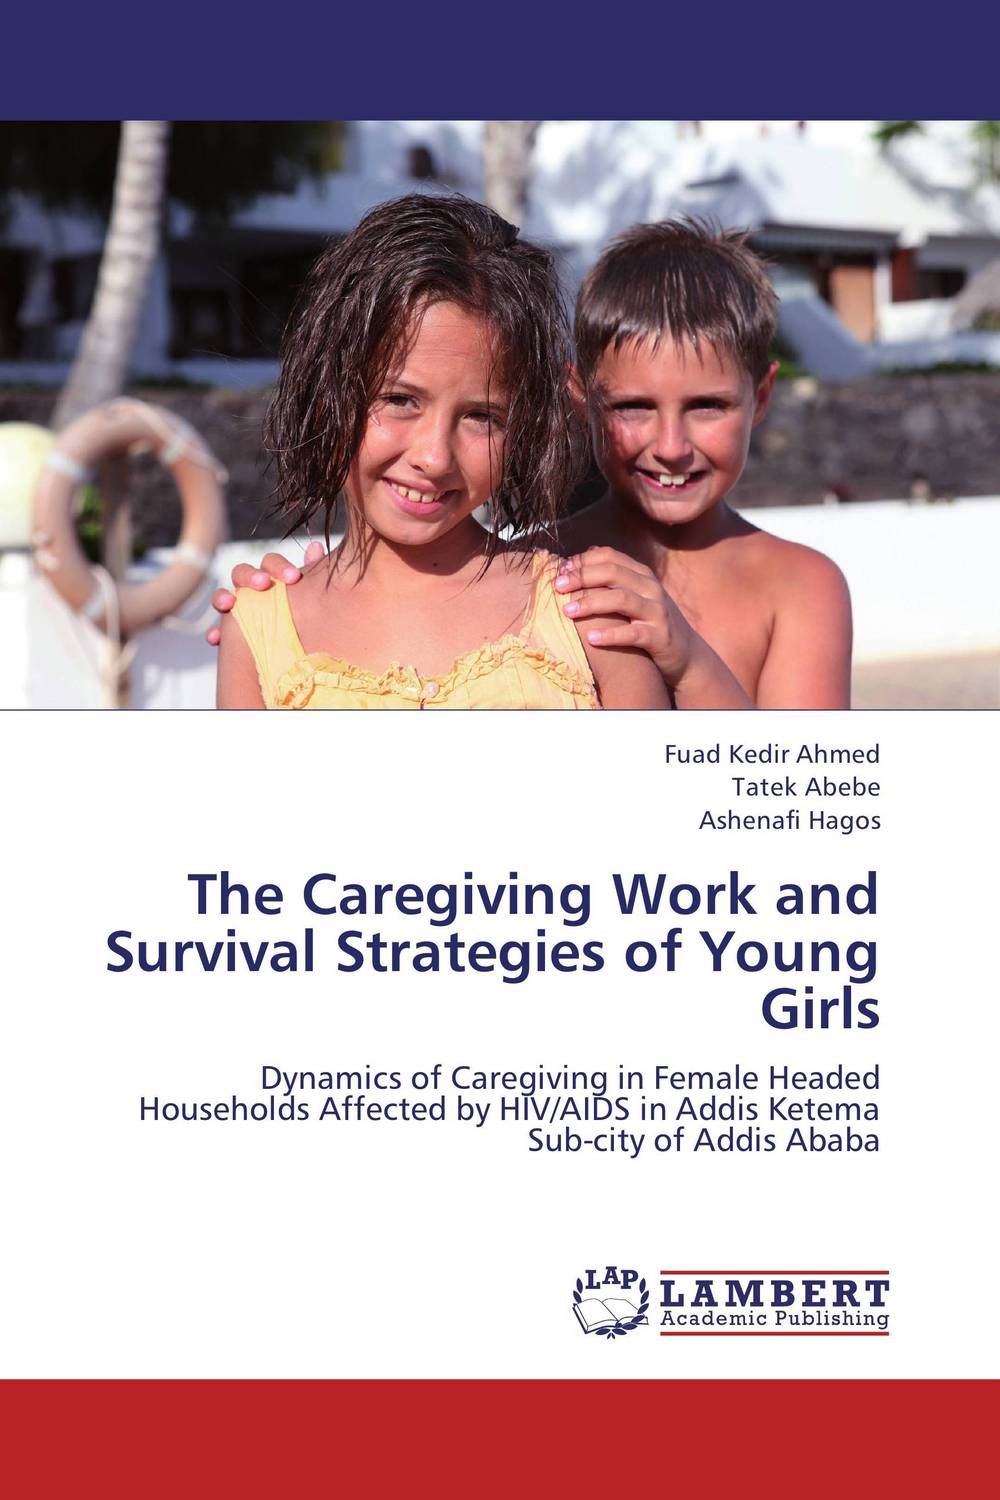 The Caregiving Work and Survival Strategies of Young Girls family caregiving in the new normal